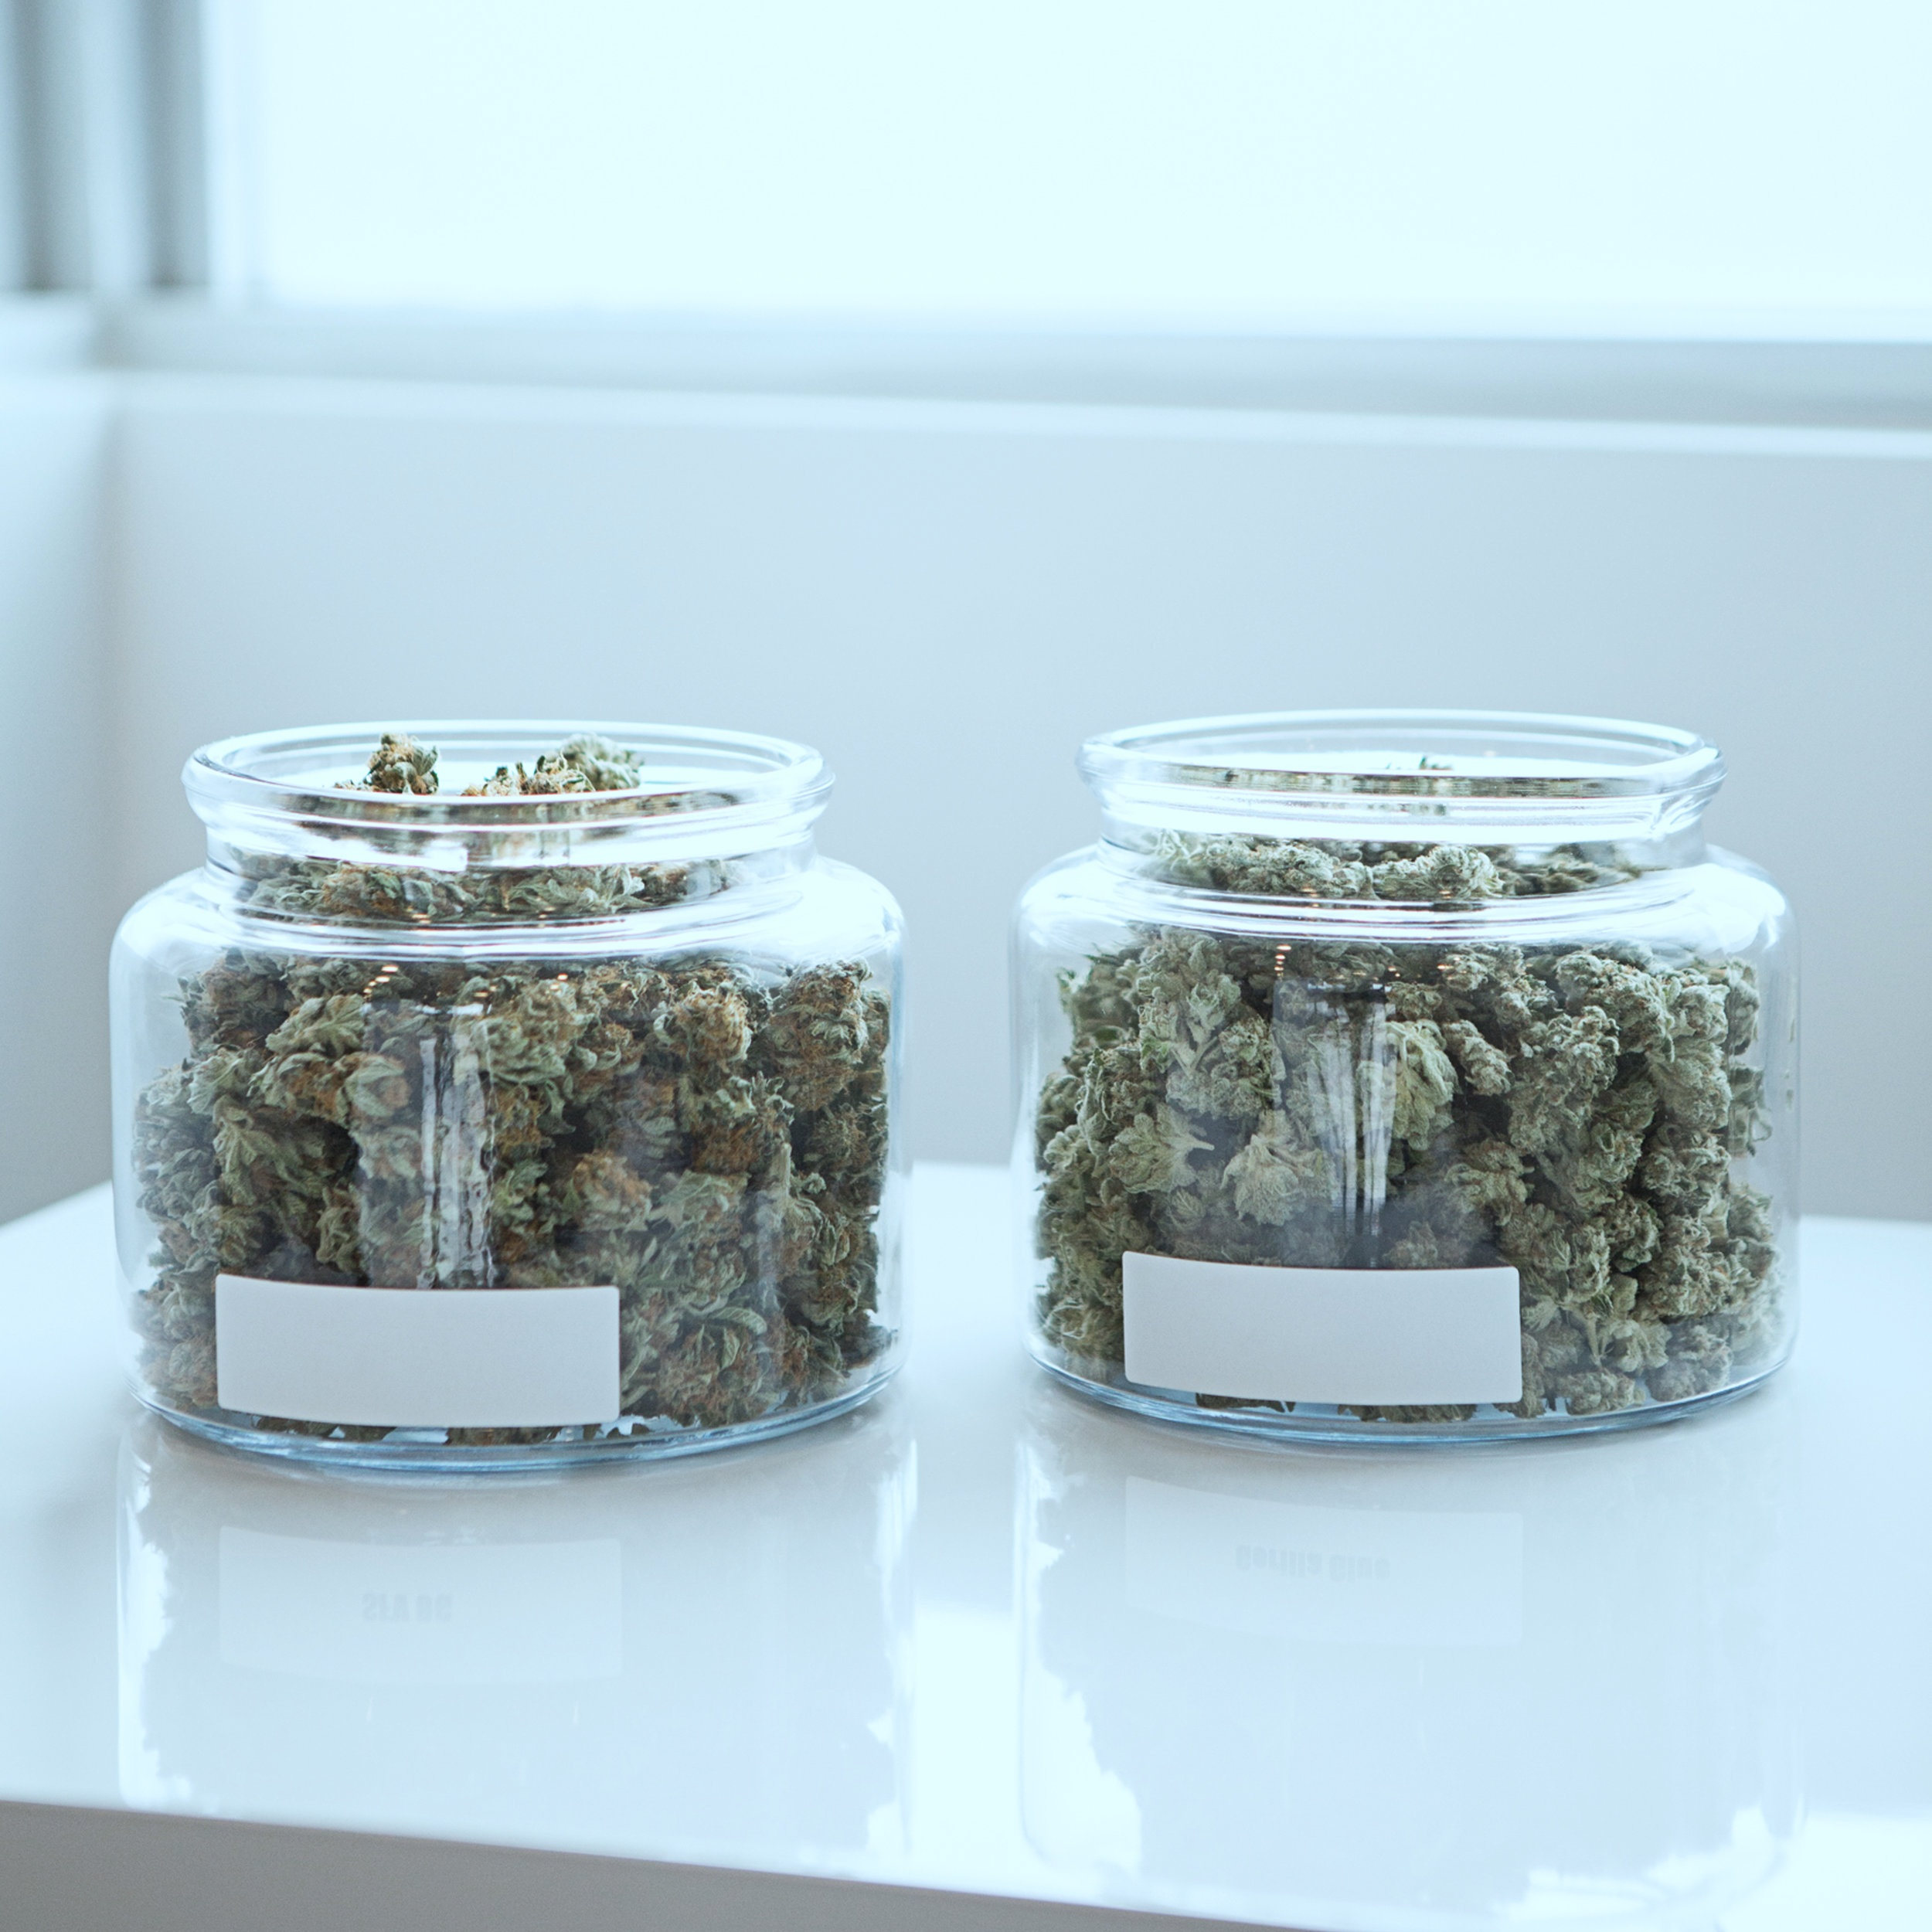 Cannabis has come a long way within the retail medicinal realm. -